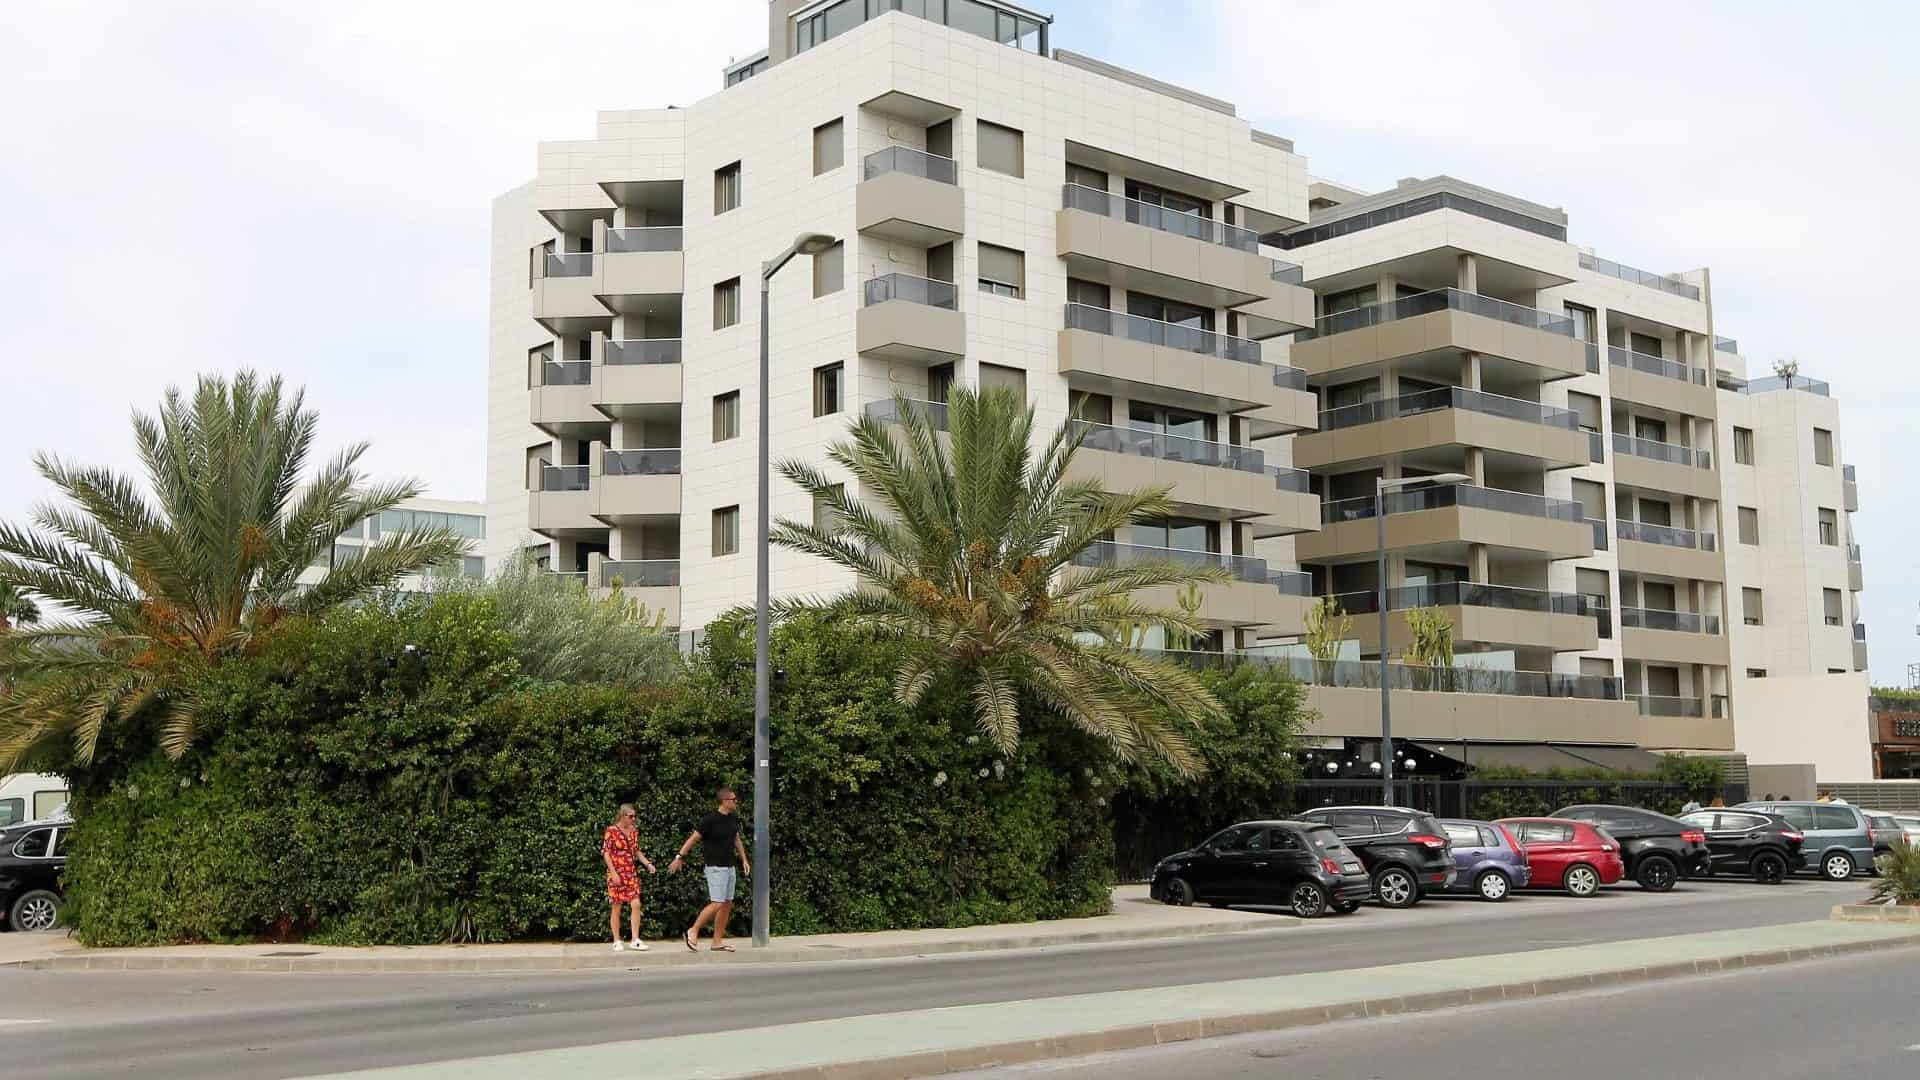 Rent summer season nice 2 bed 2 bathroom apartment Ibiza paseo maritimo area